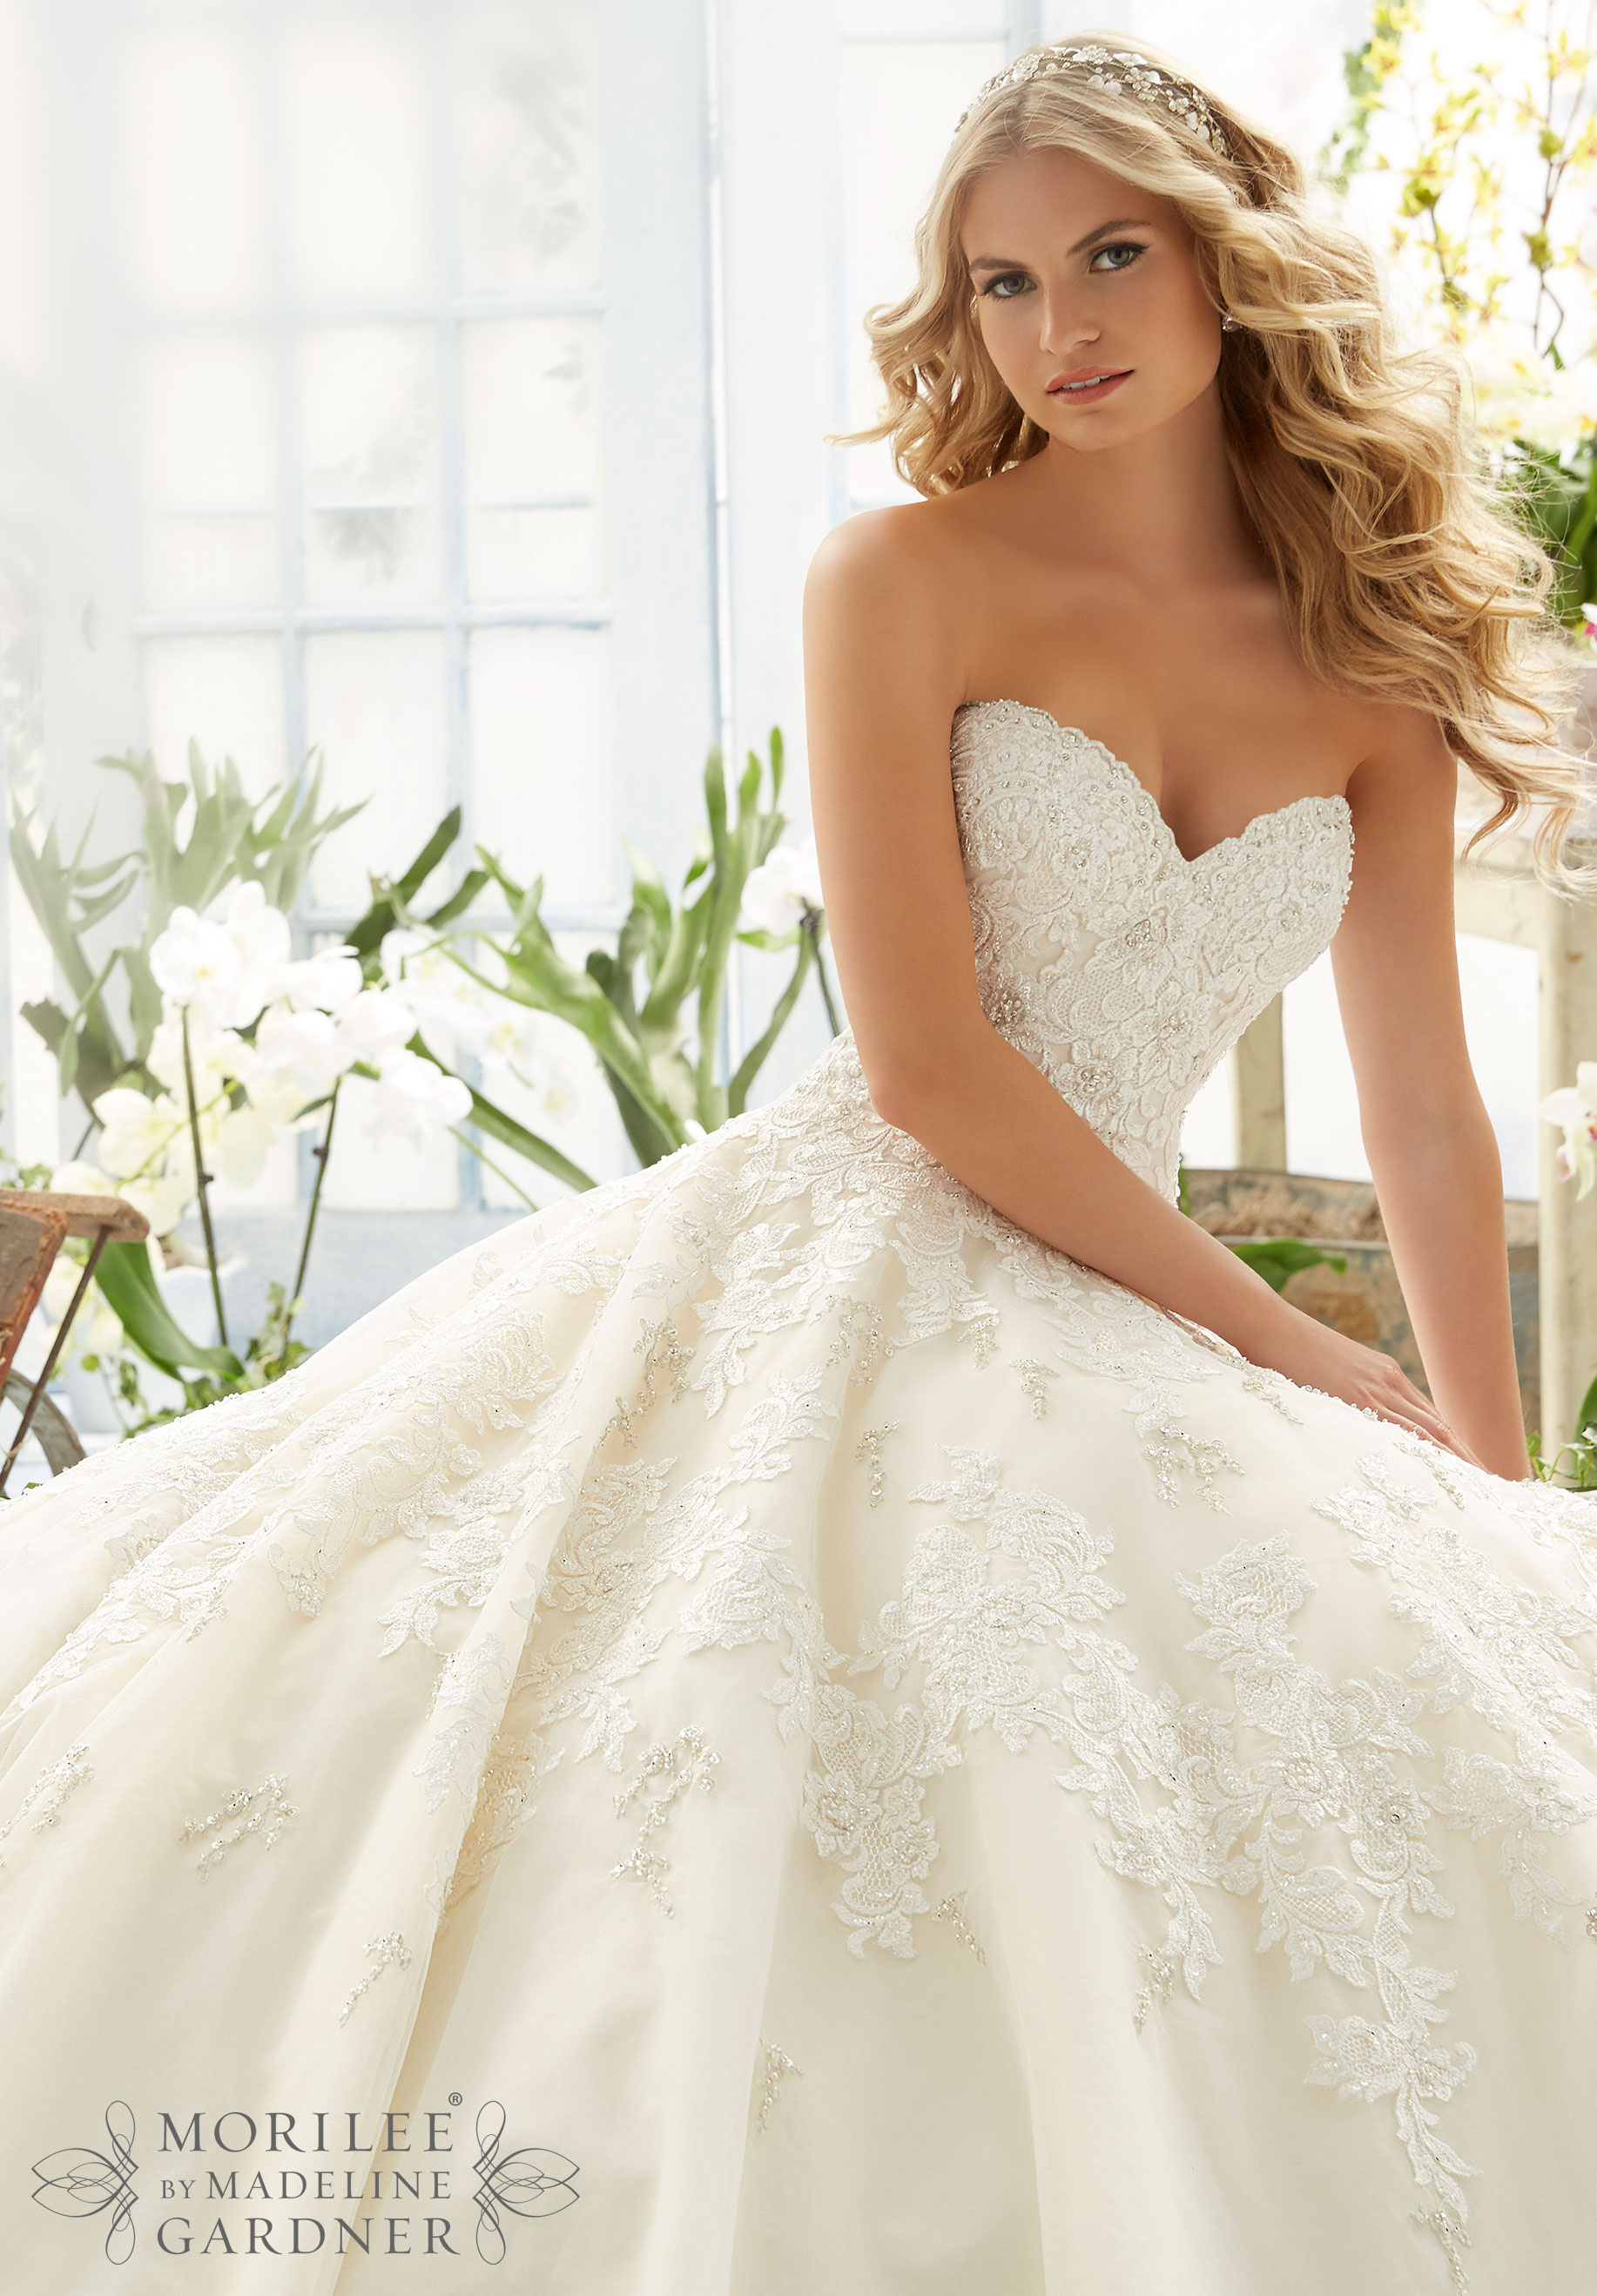 Mori Lee By Madeline Gardner Wedding Dresses Prices Ficts